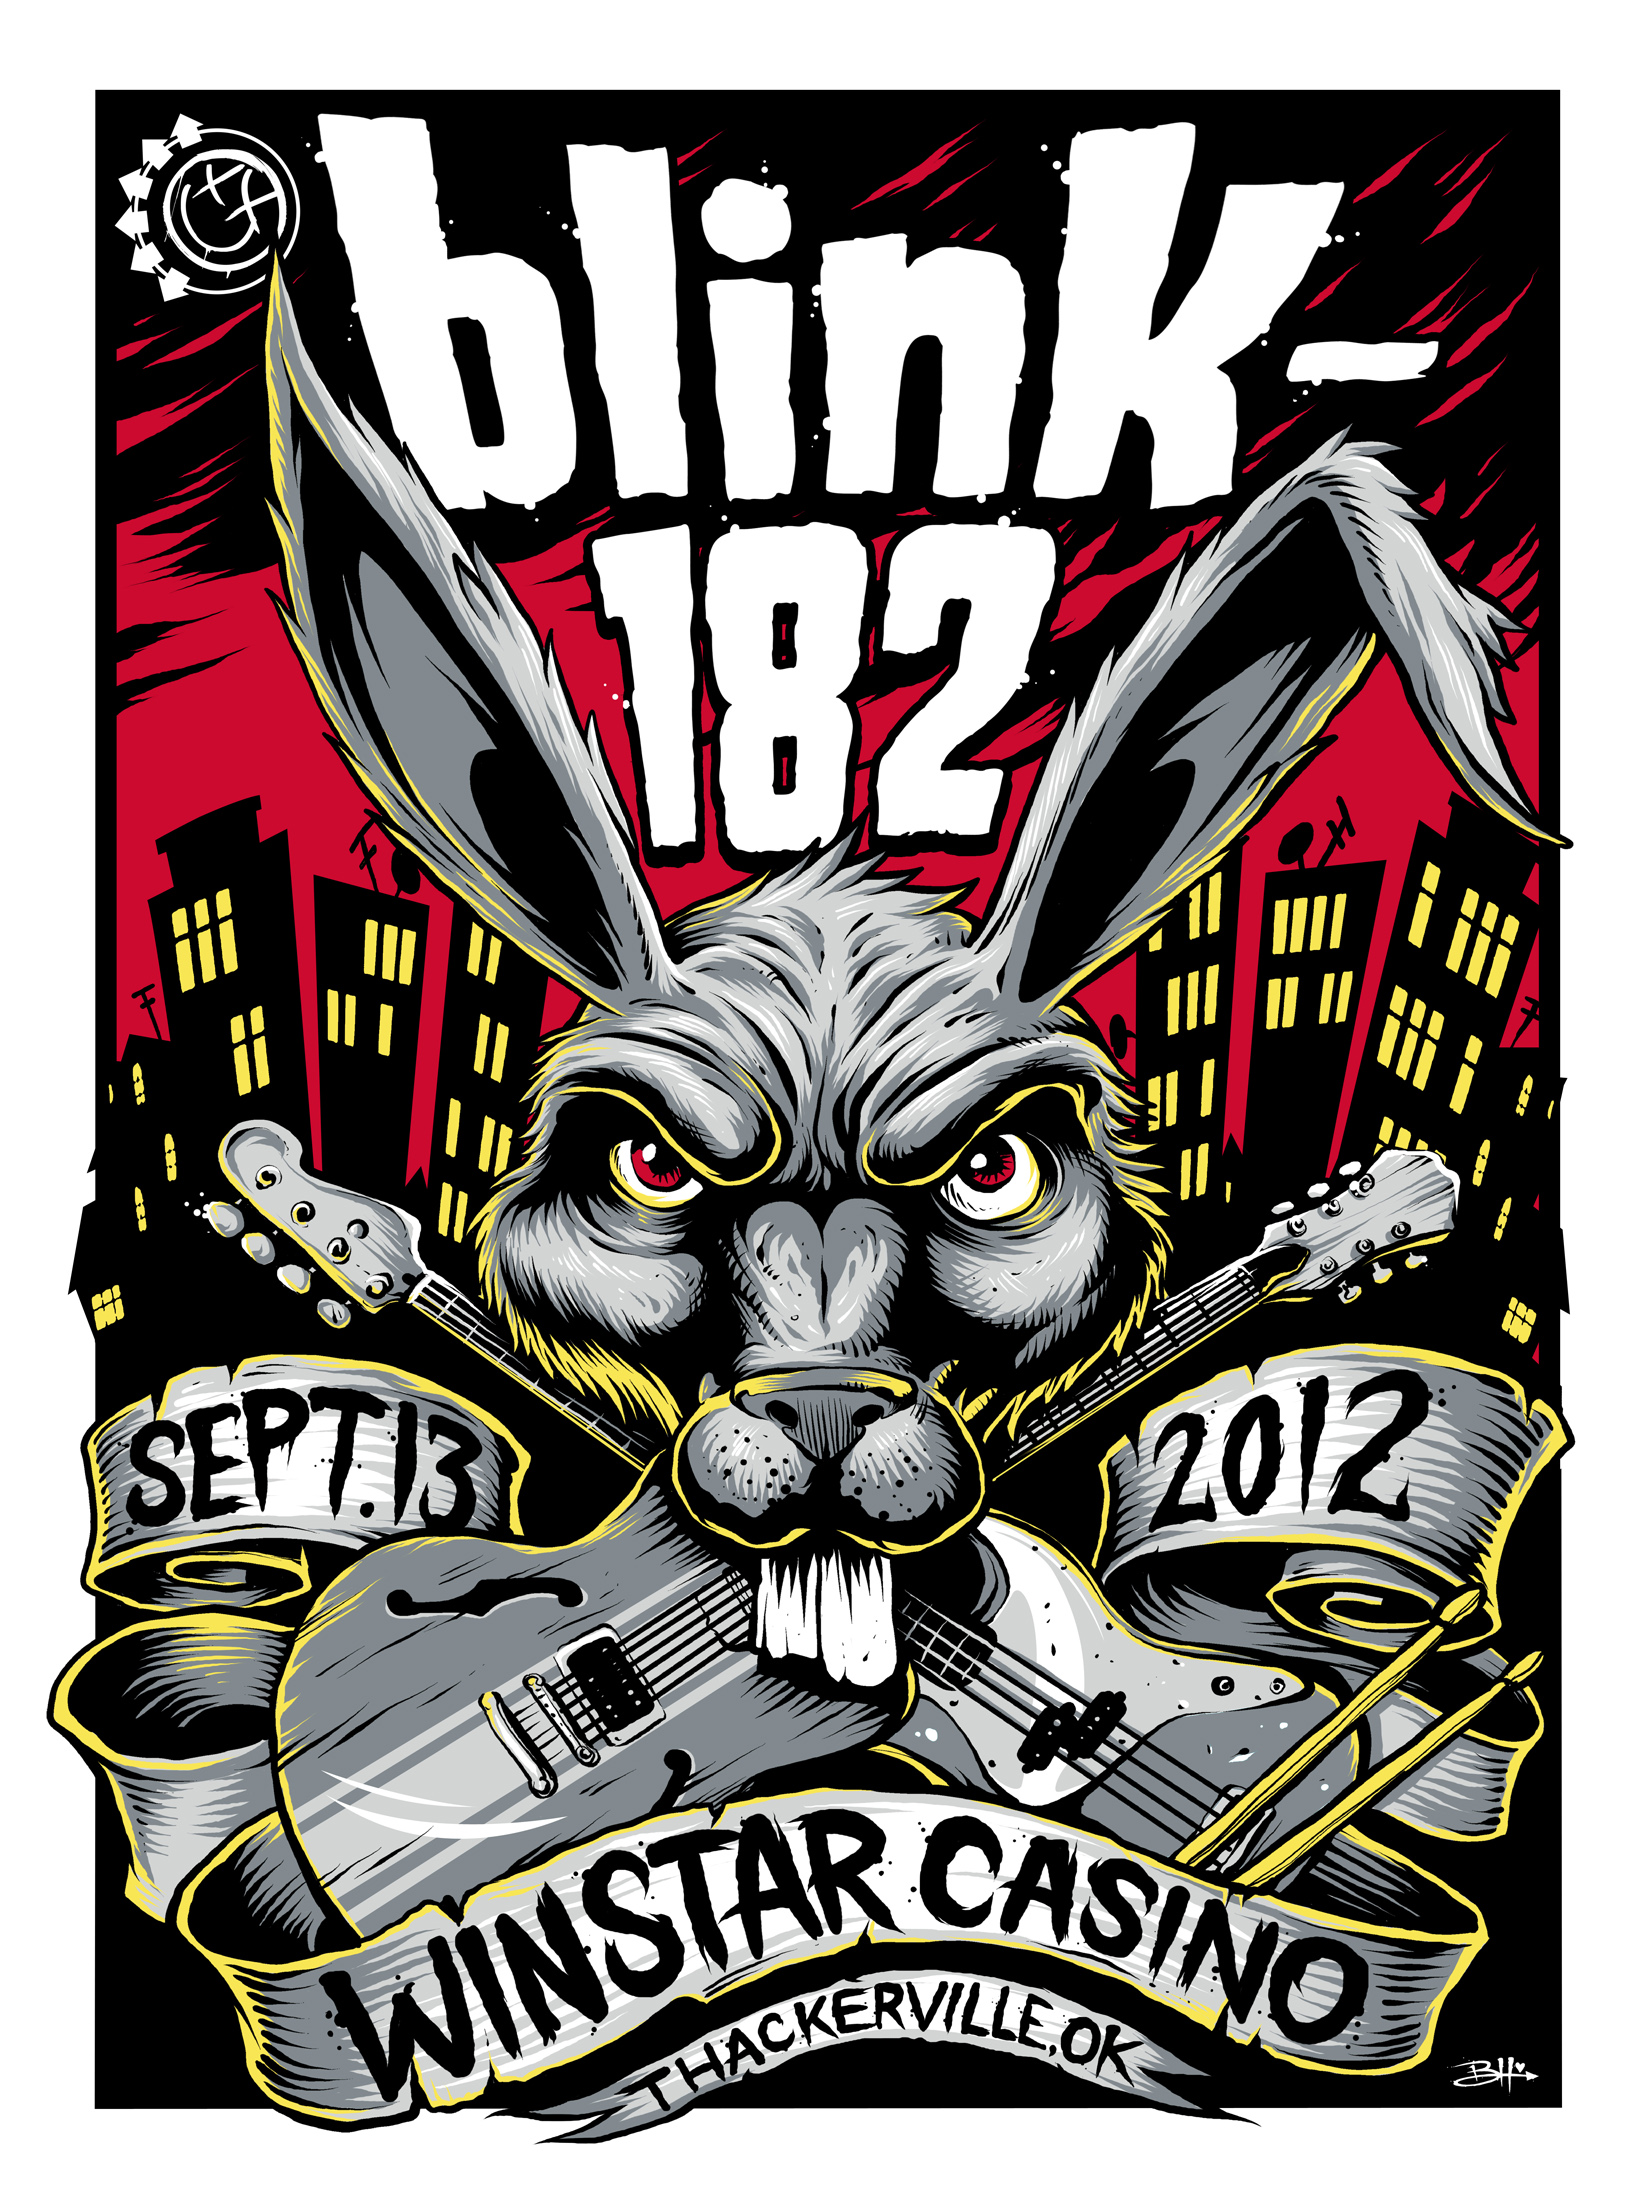 Blink_thackerville_poster_red_original